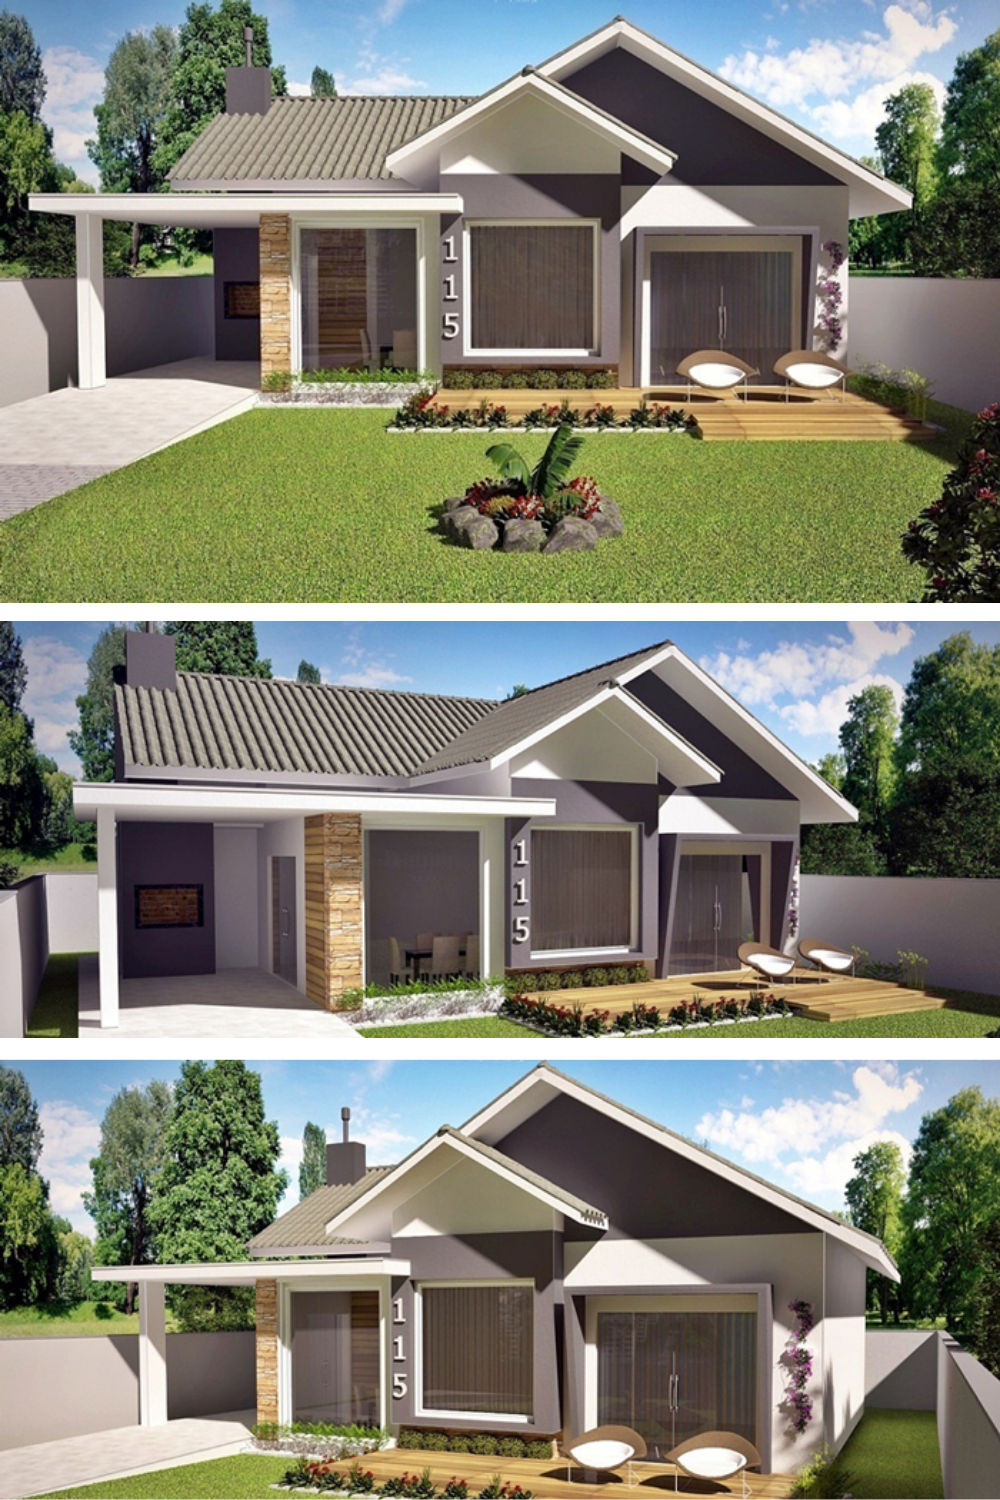 Rumah American Style : rumah, american, style, American-style, Bedroom, House, Bungalow, Design,, Facade, House,, Design